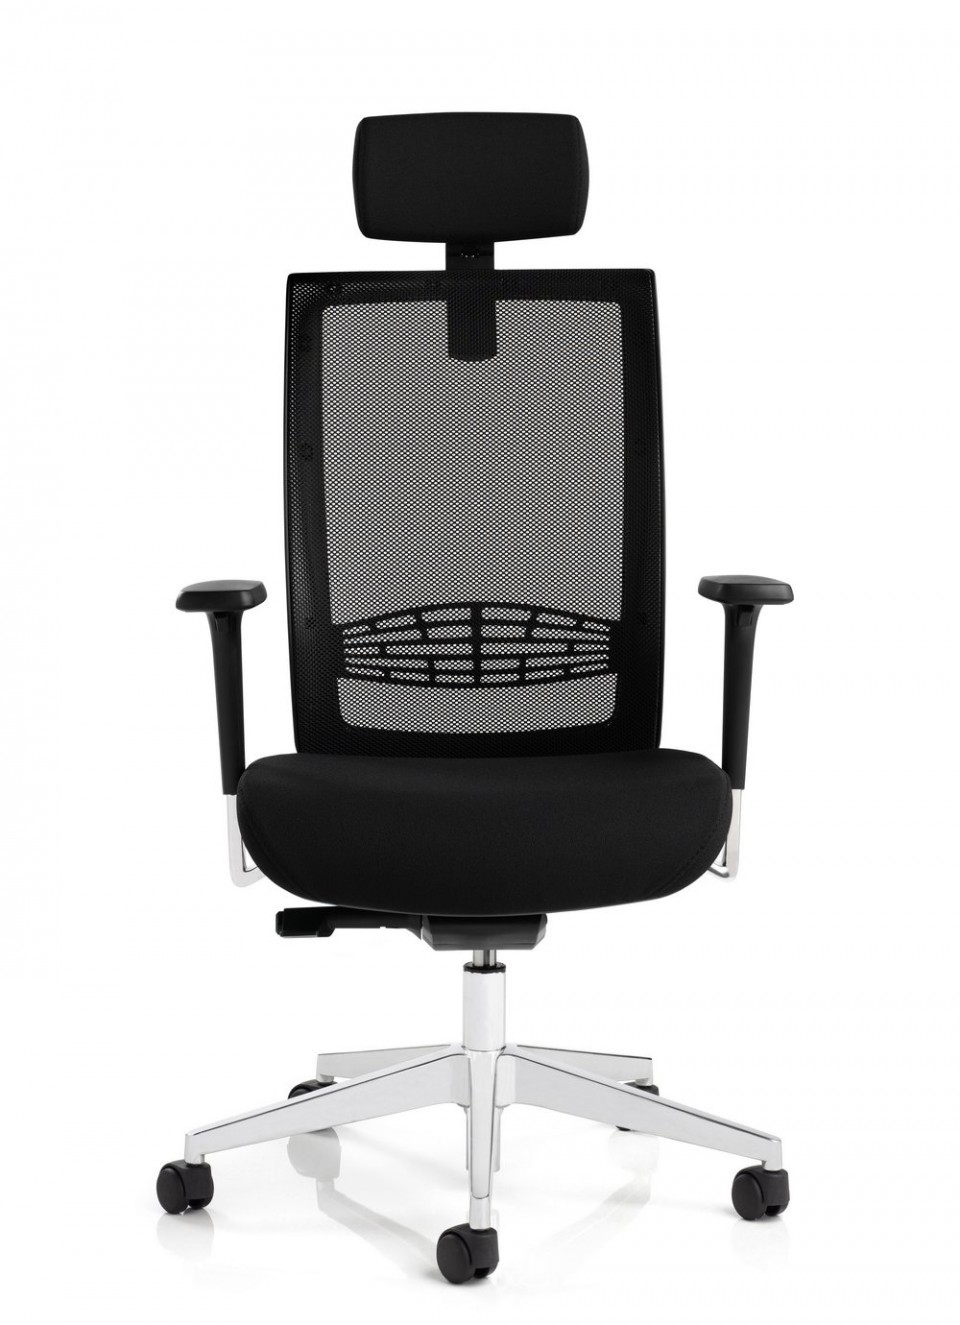 fauteuil de bureau ergonomique vannes achat si ges ergonomiques 288 00. Black Bedroom Furniture Sets. Home Design Ideas